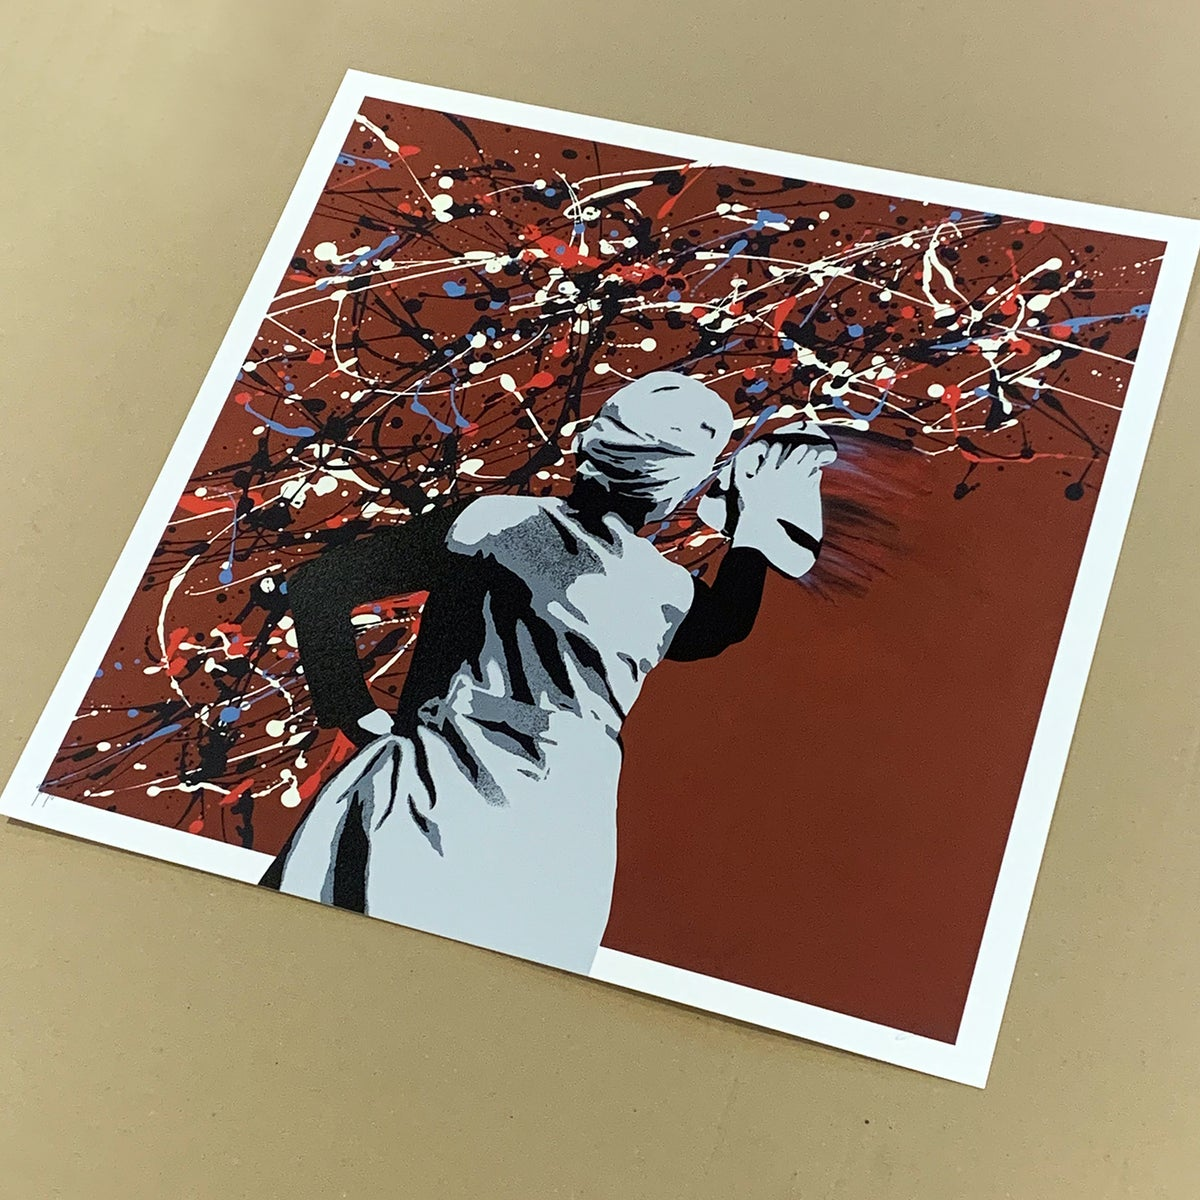 "Image of ""Drip Remover"" AP 1/4 Burgundy to an Edition of 25 - Screen Print"